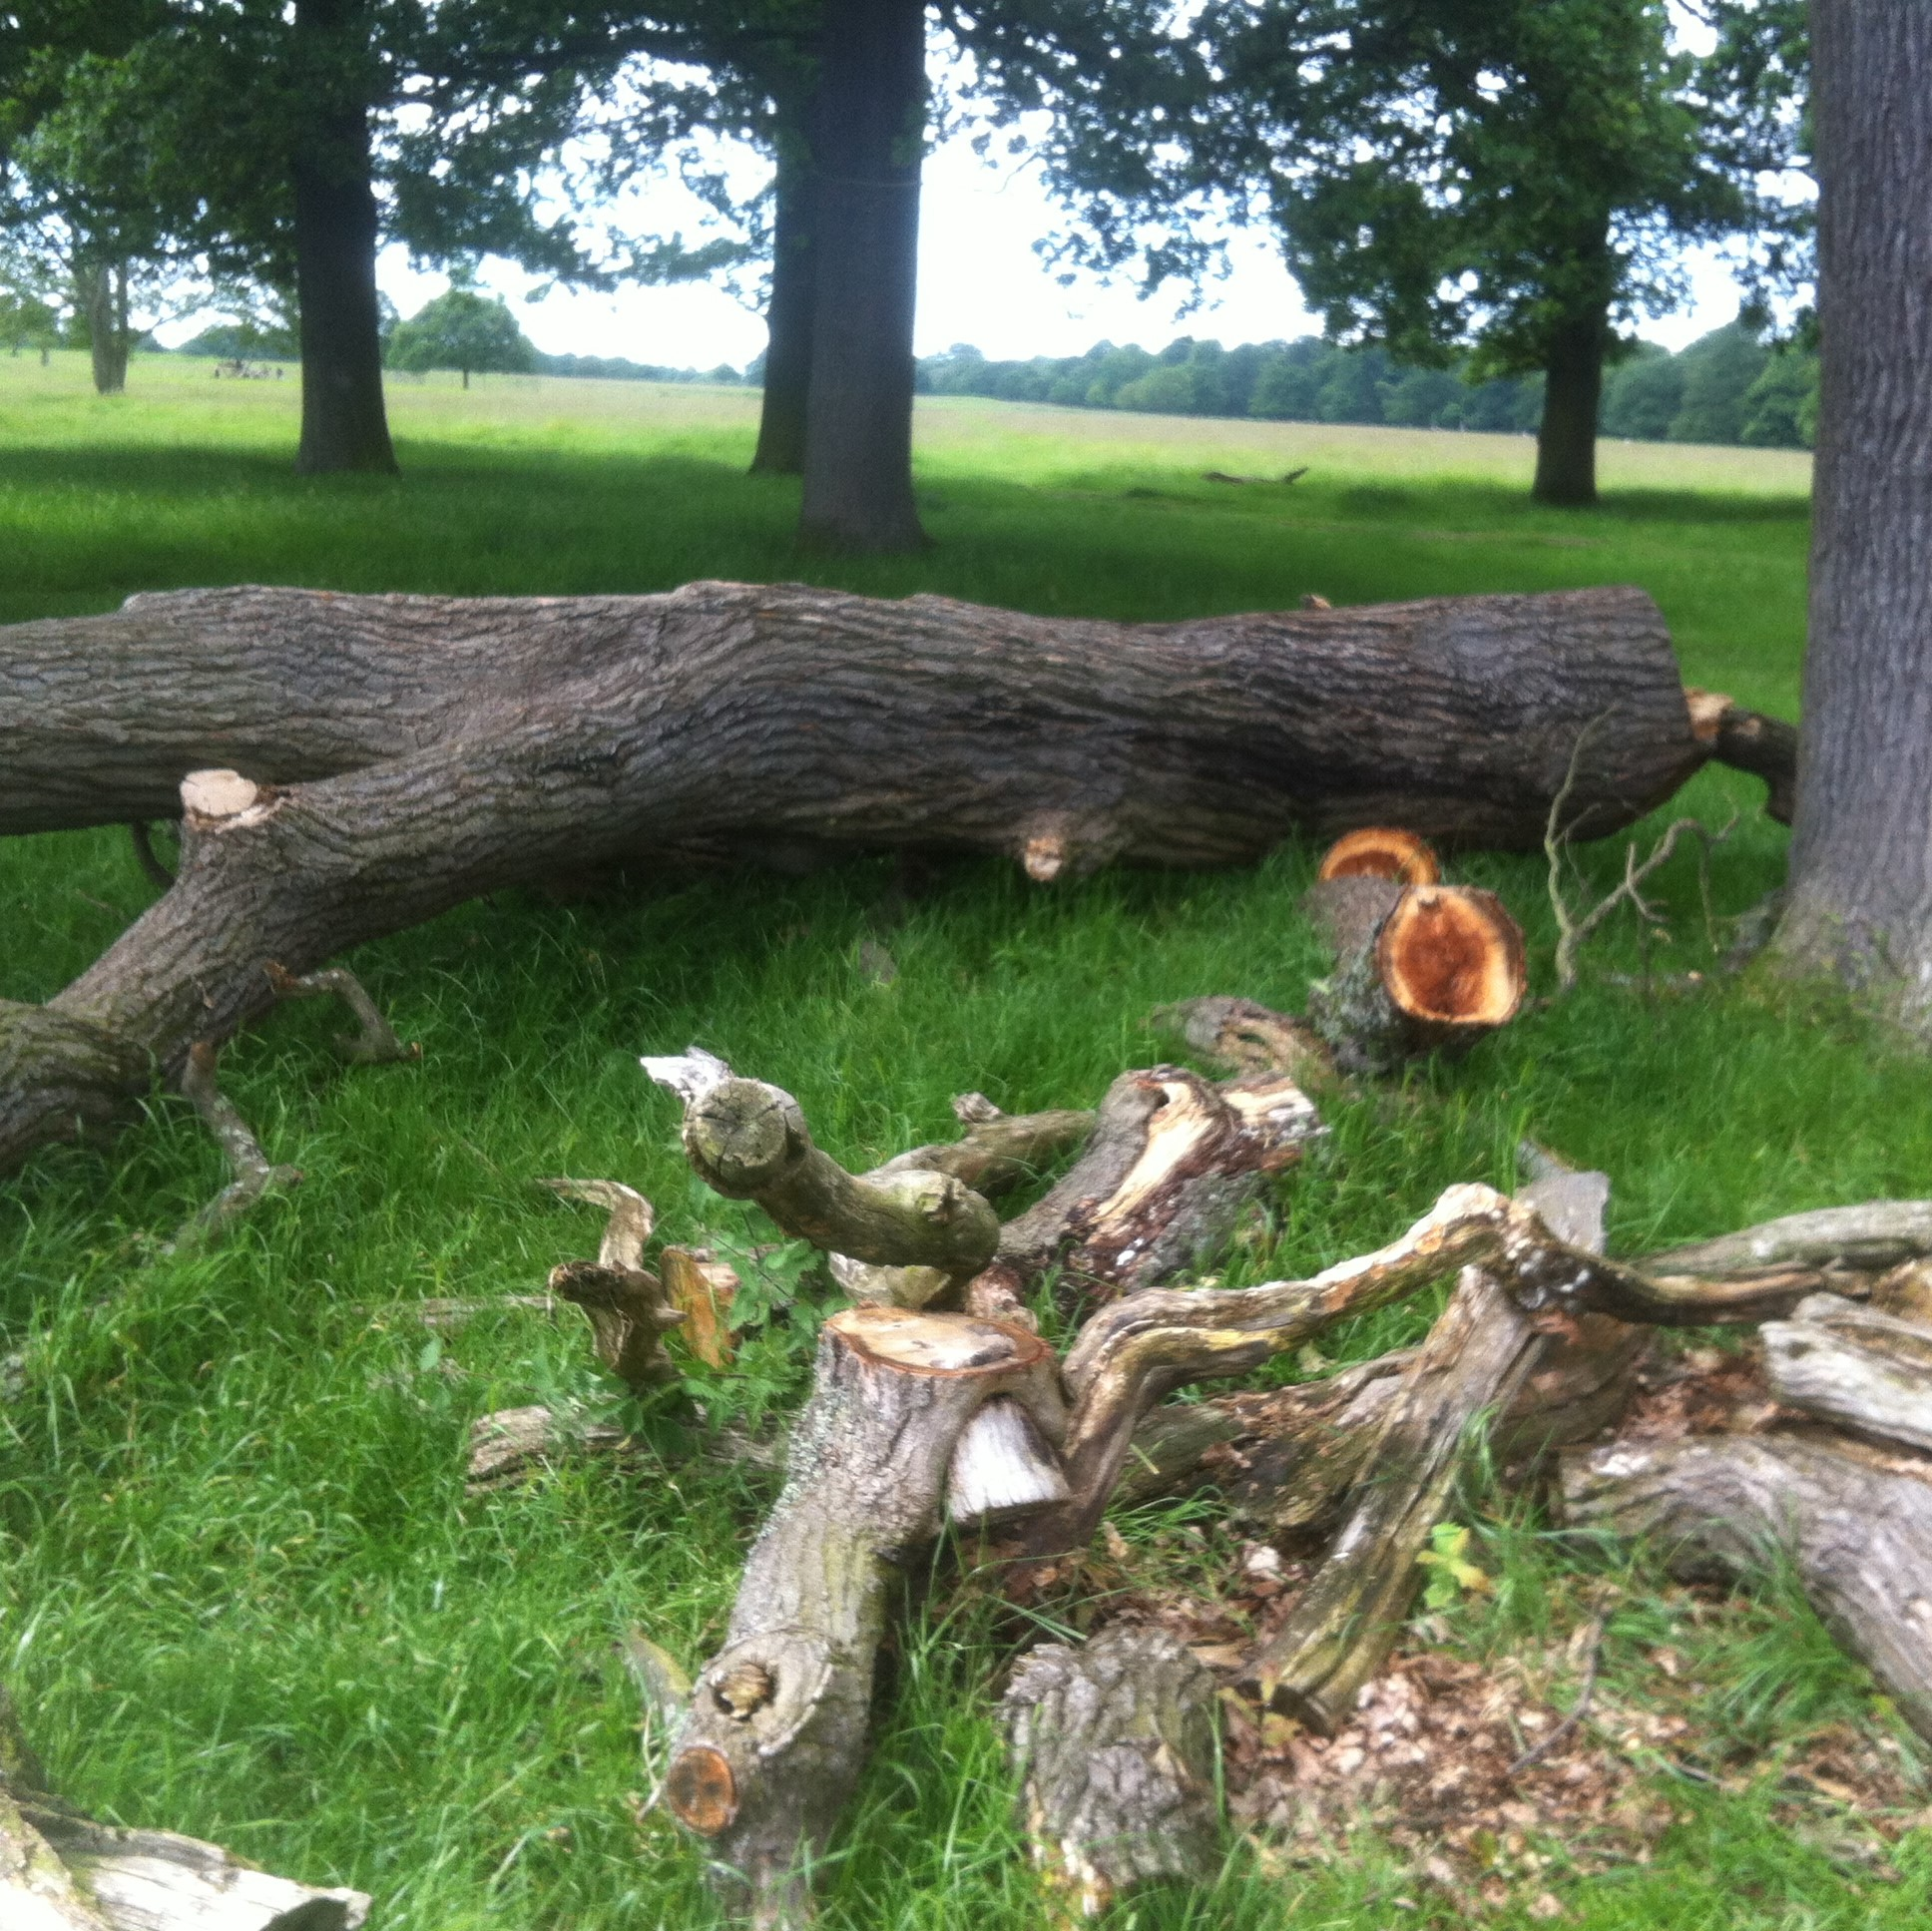 Deadwood habitat in Richmond Park (London)